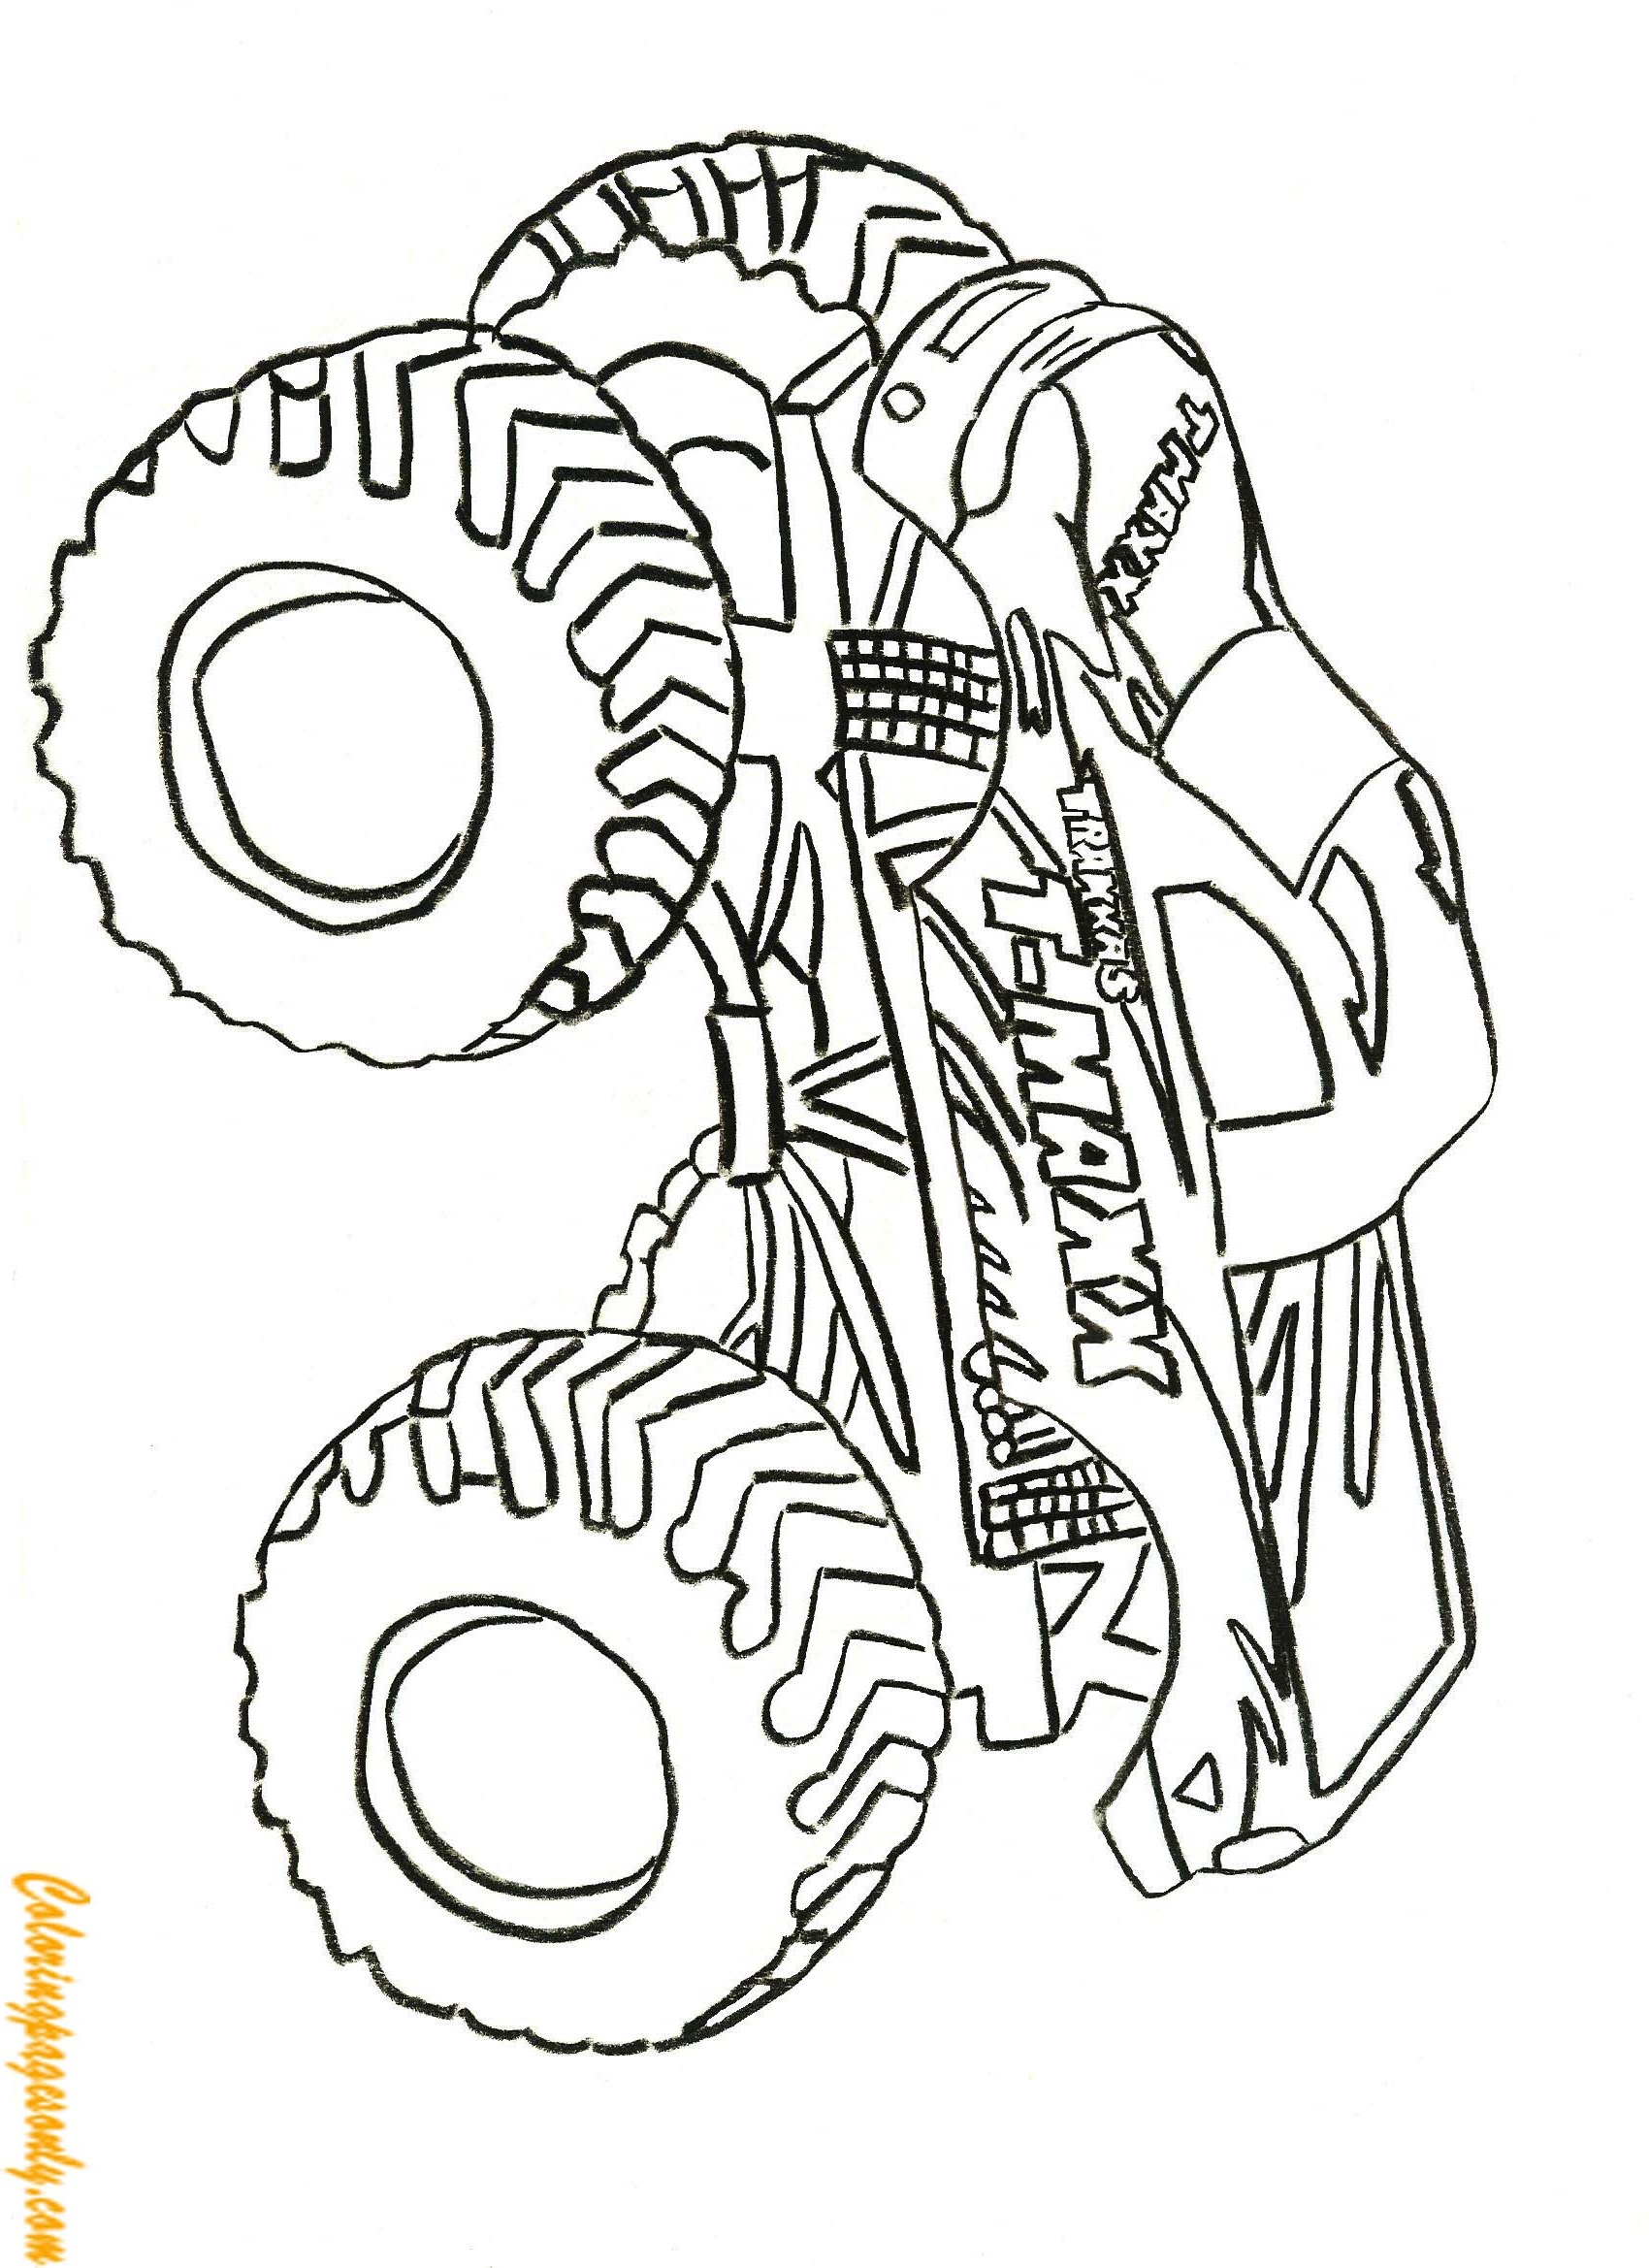 Monster Truck Coloring Pages Printable di 2020 | 2338x1700